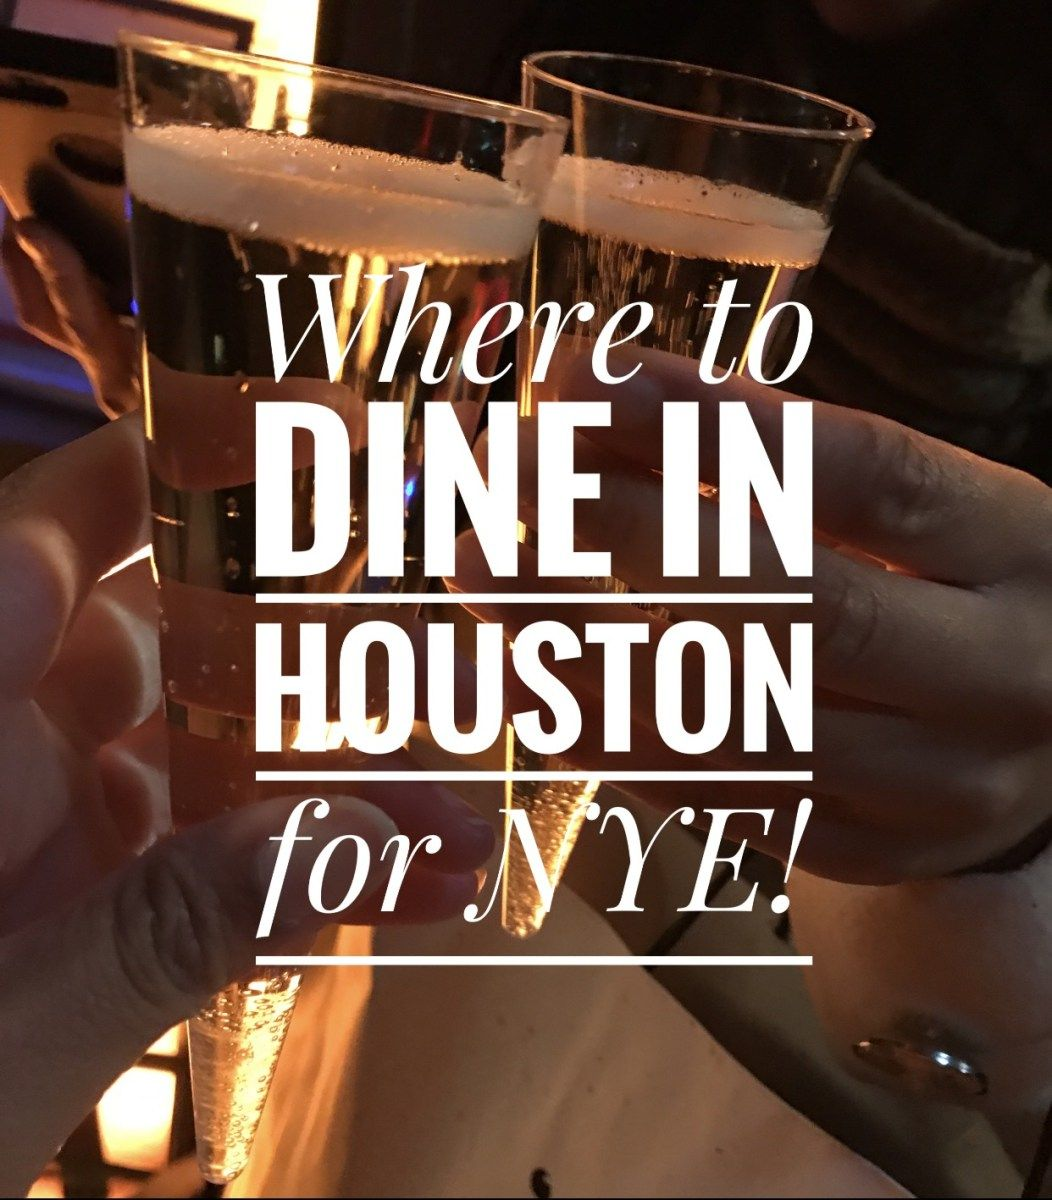 Where to dine in houston for new years eve houston